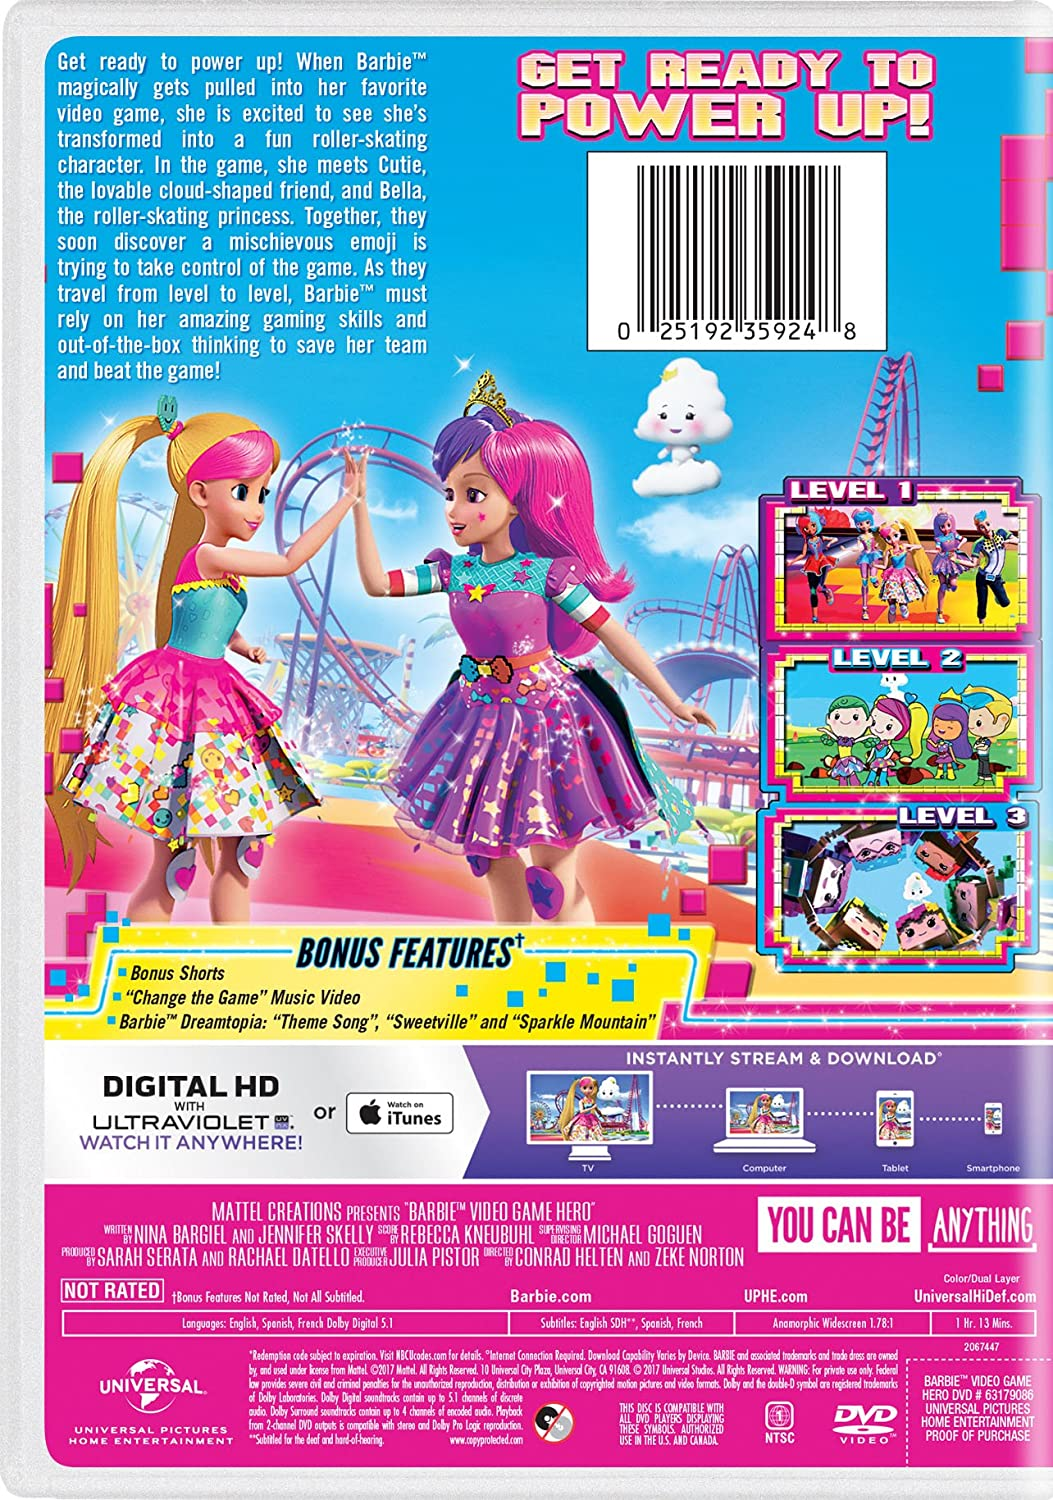 Amazon Barbie Video Game Hero Erica Lindbeck Sienna Bohn Shannon Chan Kent Michael Dobson Alyssya Swales Rebekah Asselstine Brad Swaile